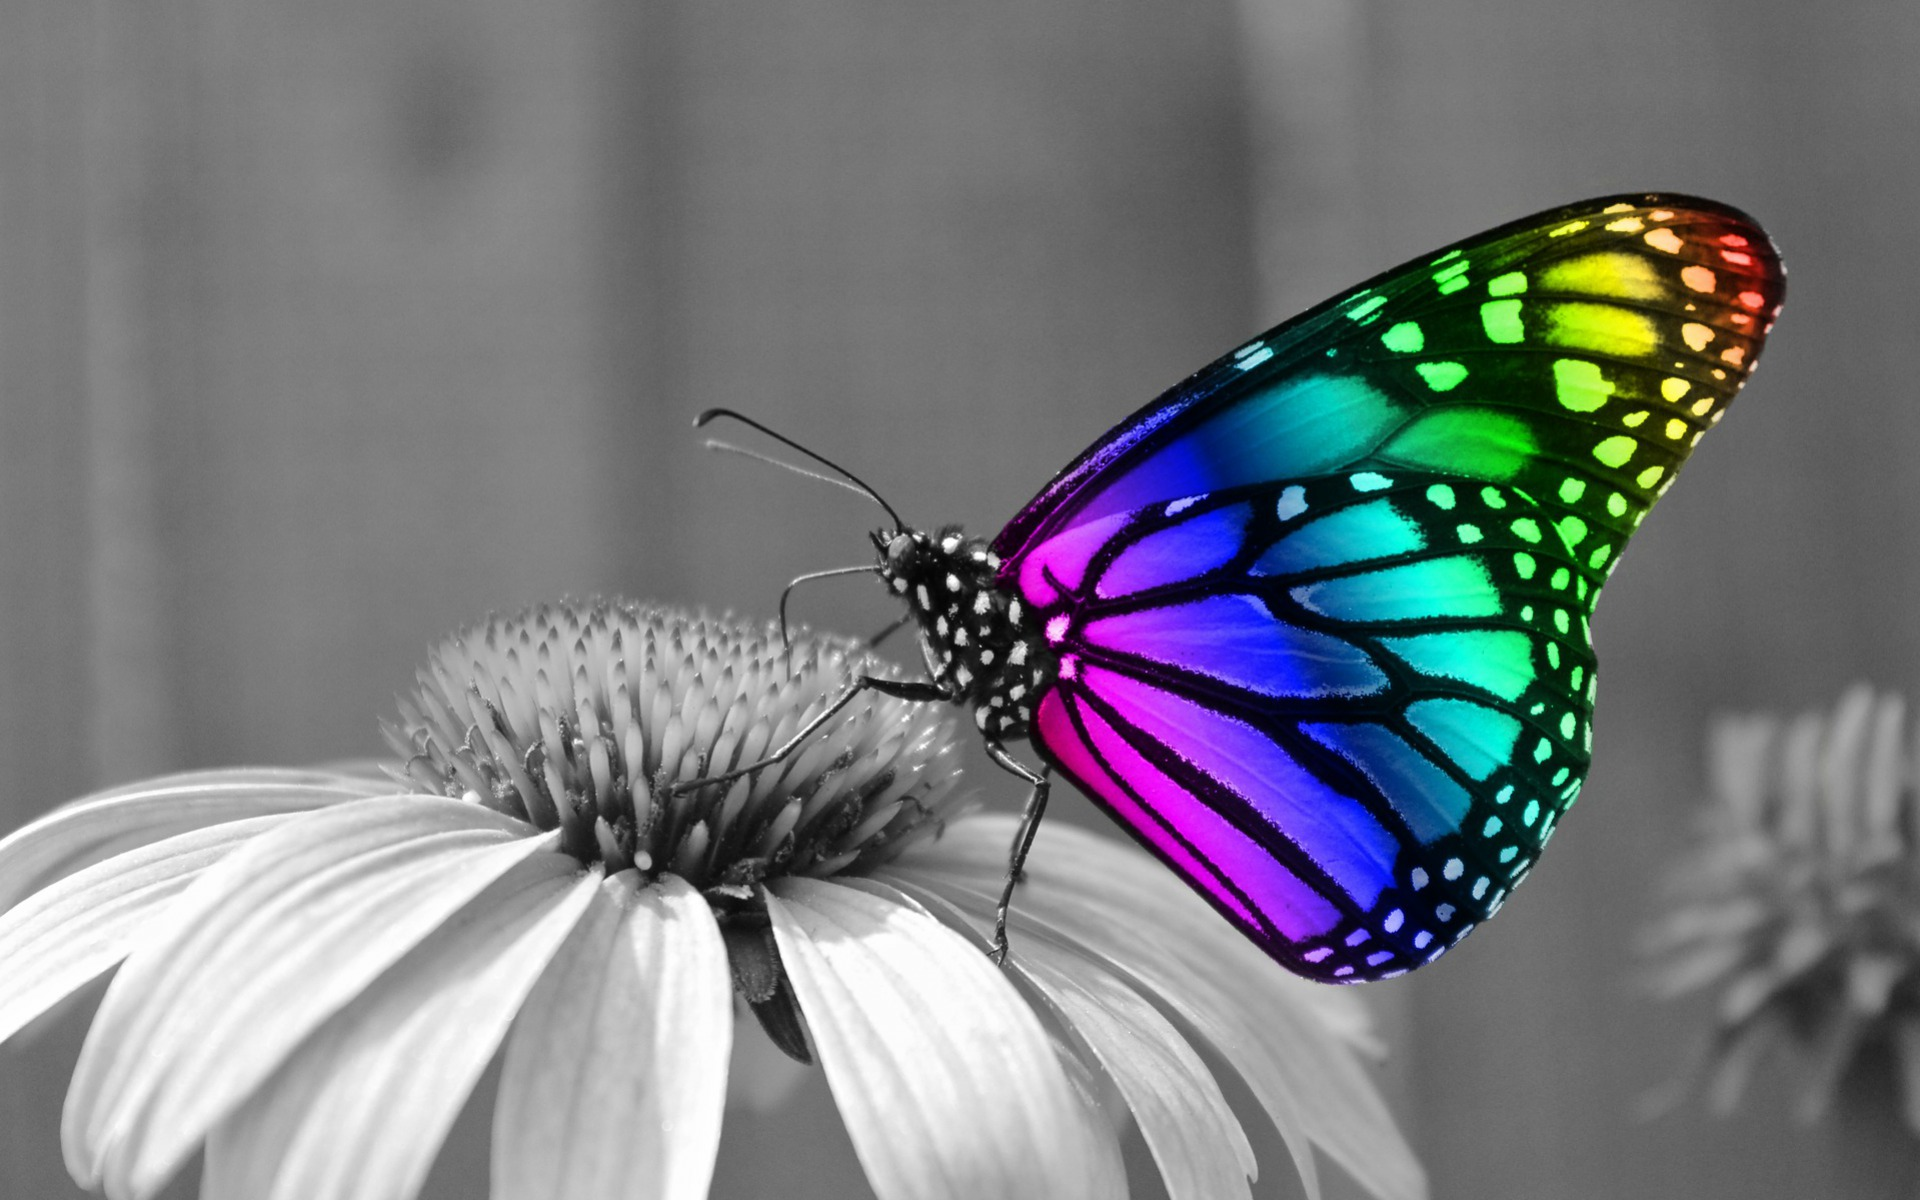 Rainbow Butterfly wallpapers   Rainbow Butterfly stock photos Image  Rainbow Butterfly wallpapers and stock photos